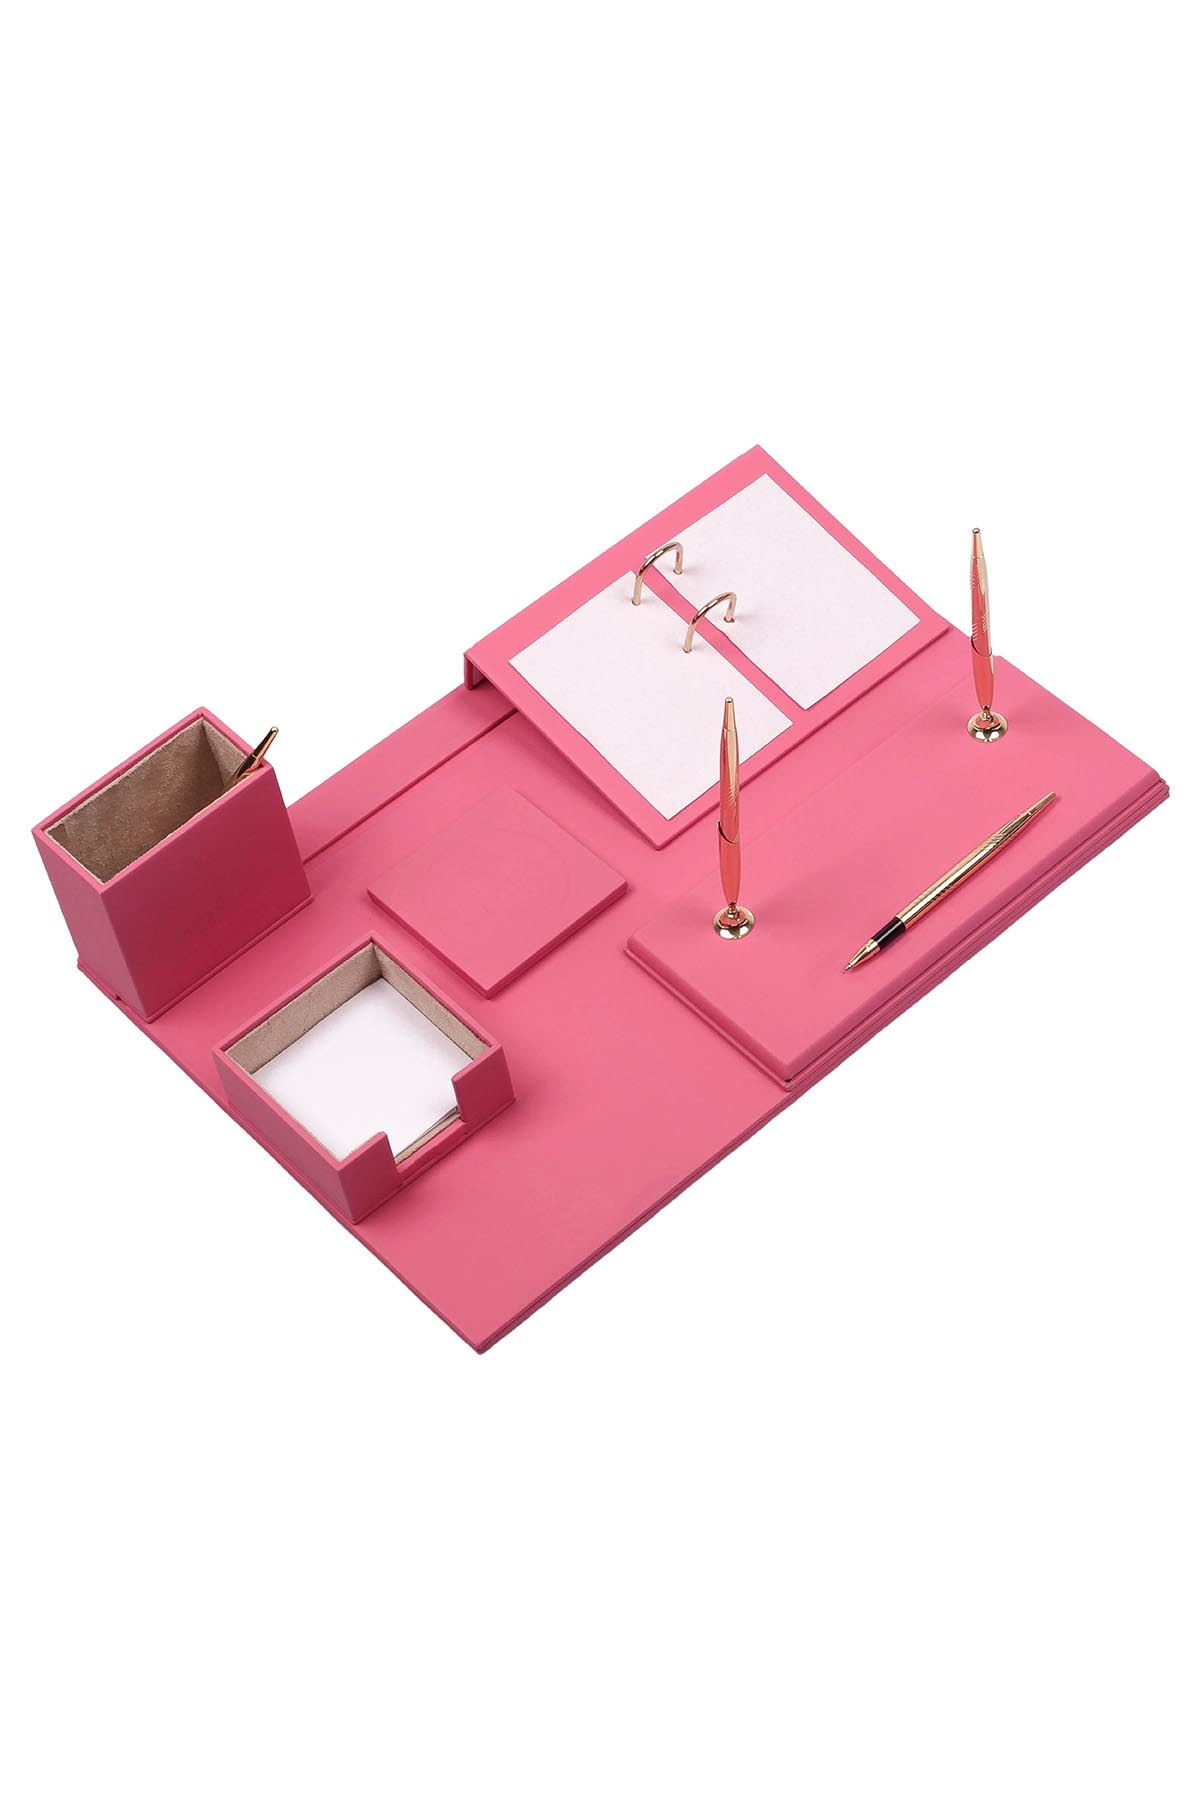 Leather Desk Set 8 Accessories Pink